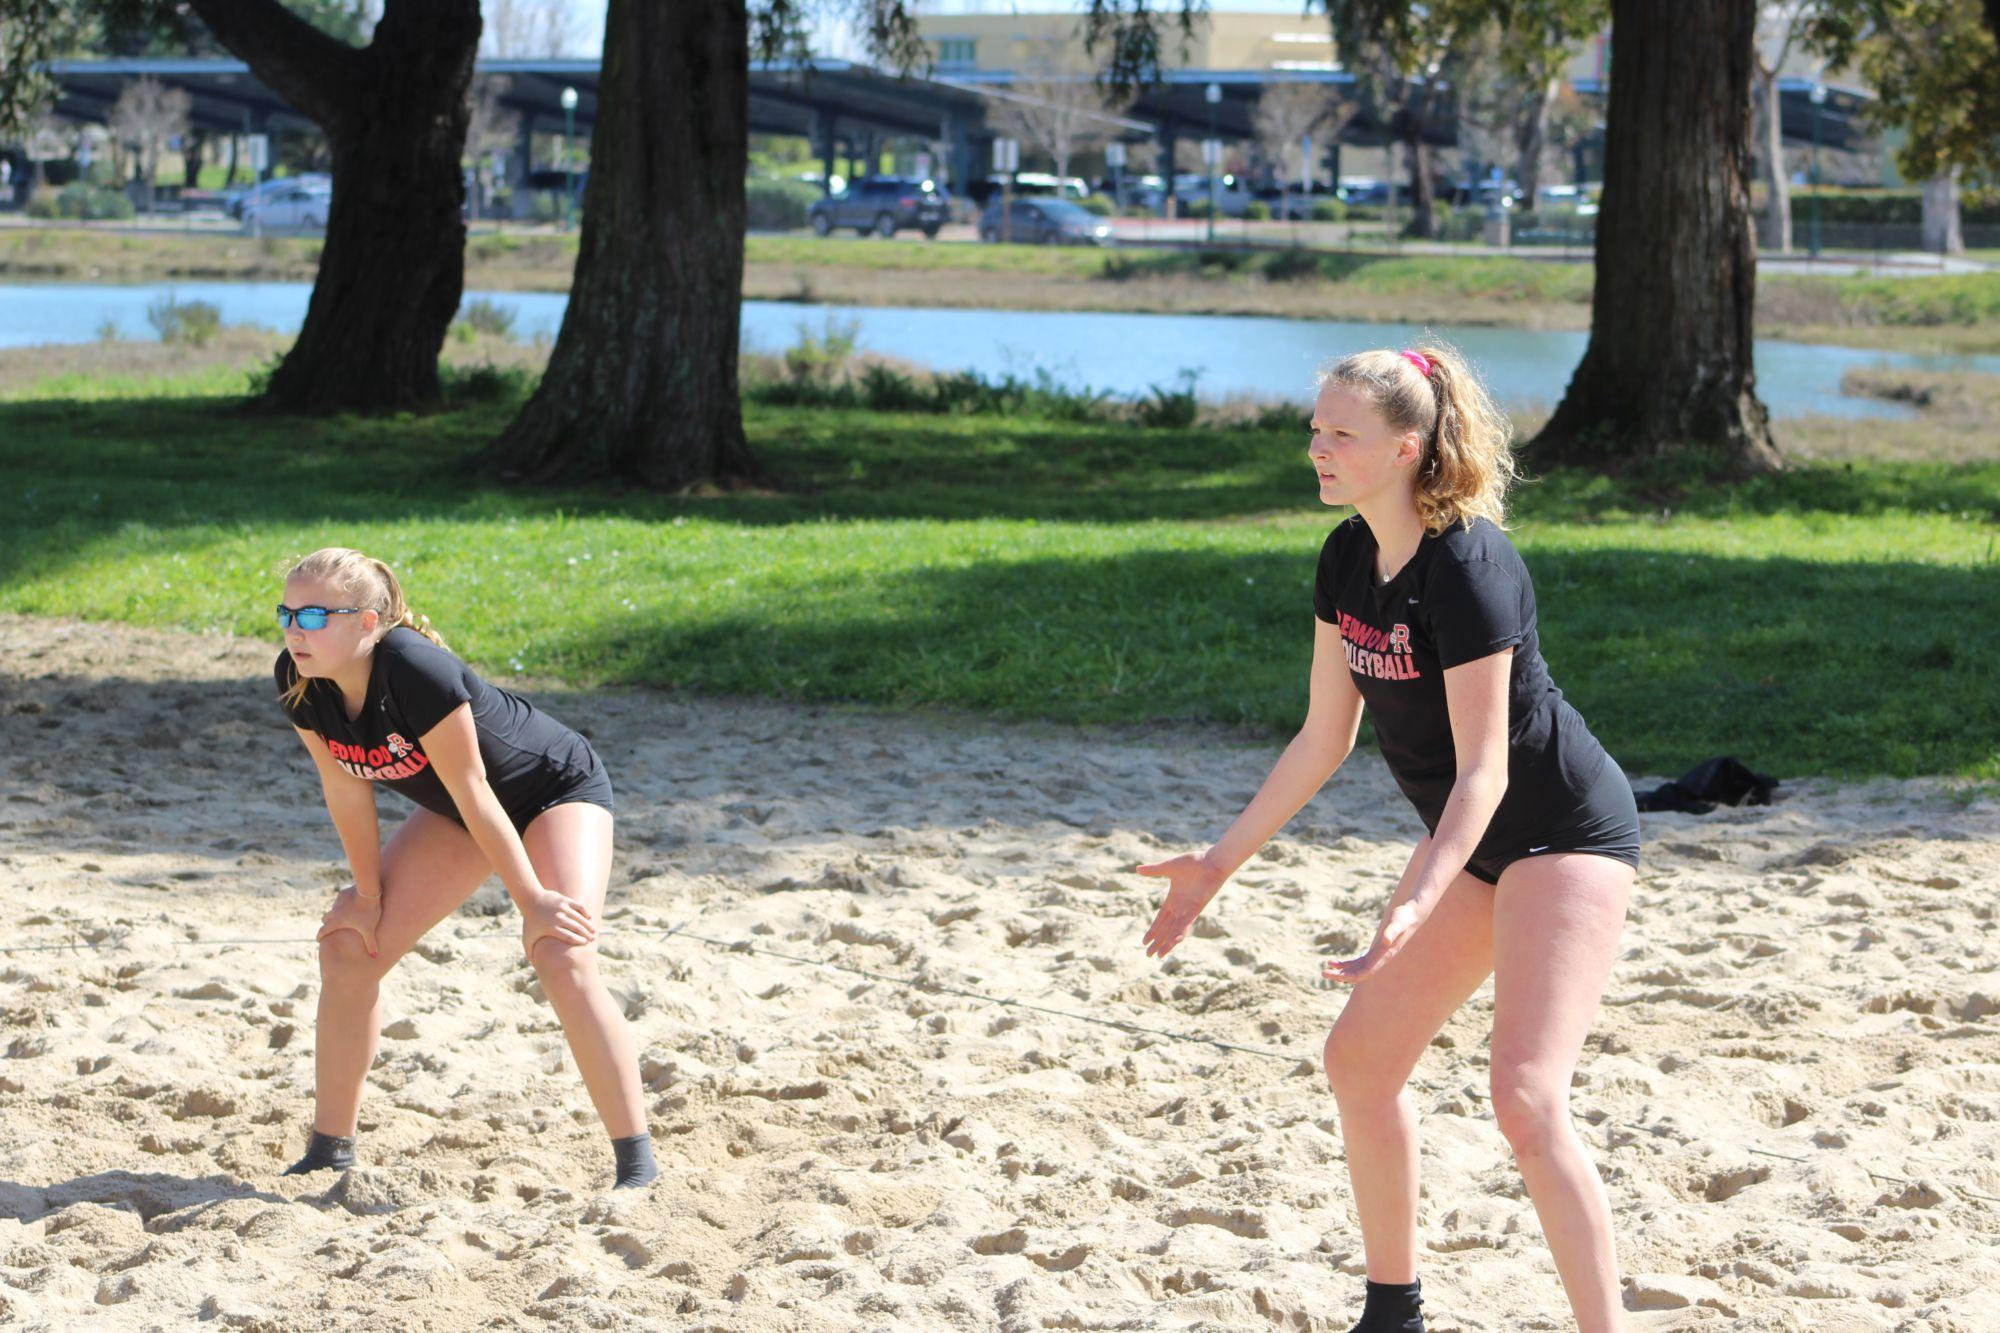 Girls' volleyball takes to the sand to compete in new beach league